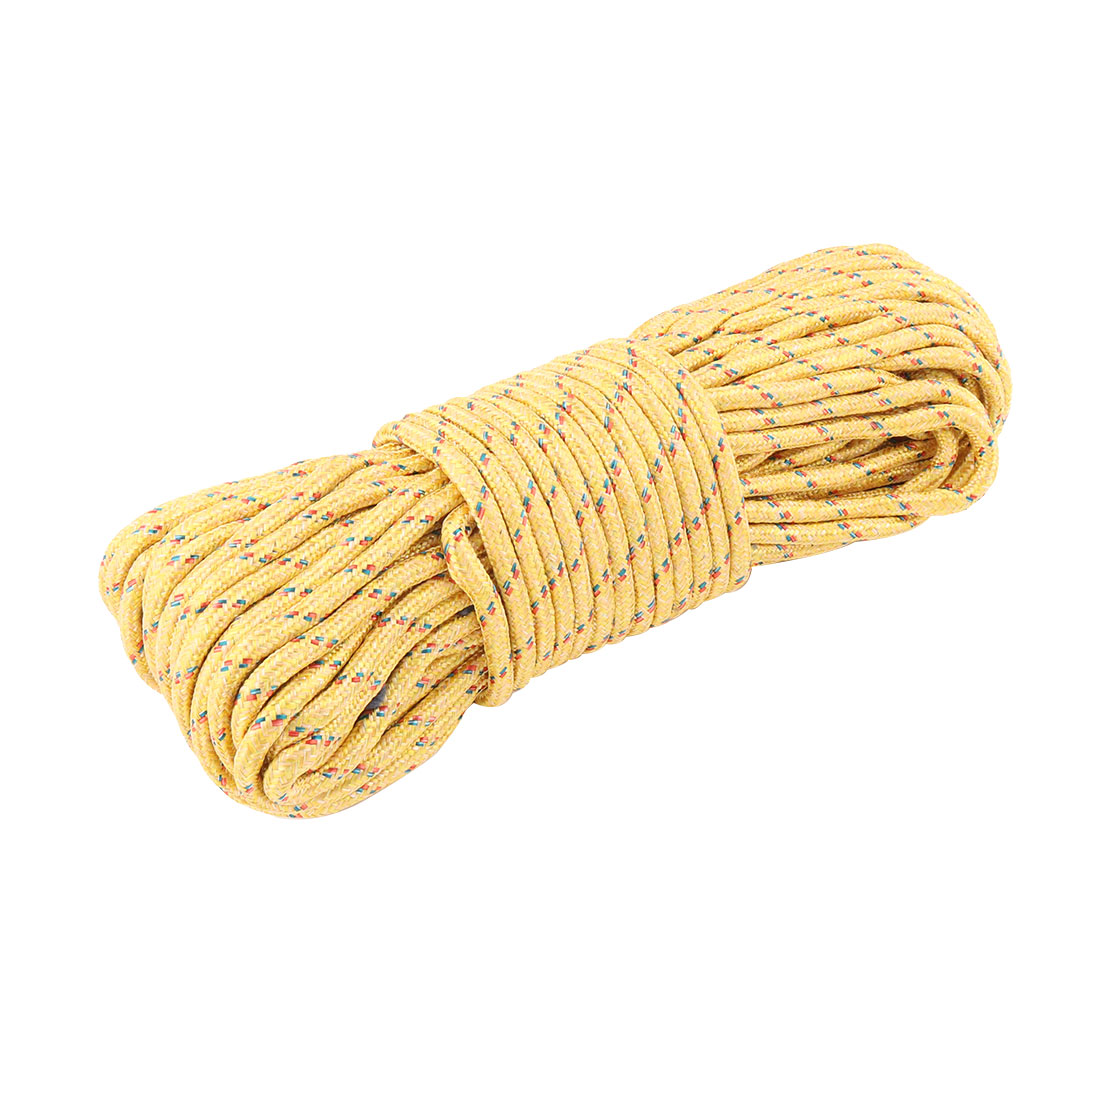 Household Outdoor Nylon Hanging Windproof Clothes Rope String Line Clothesline Yellow 28m Long